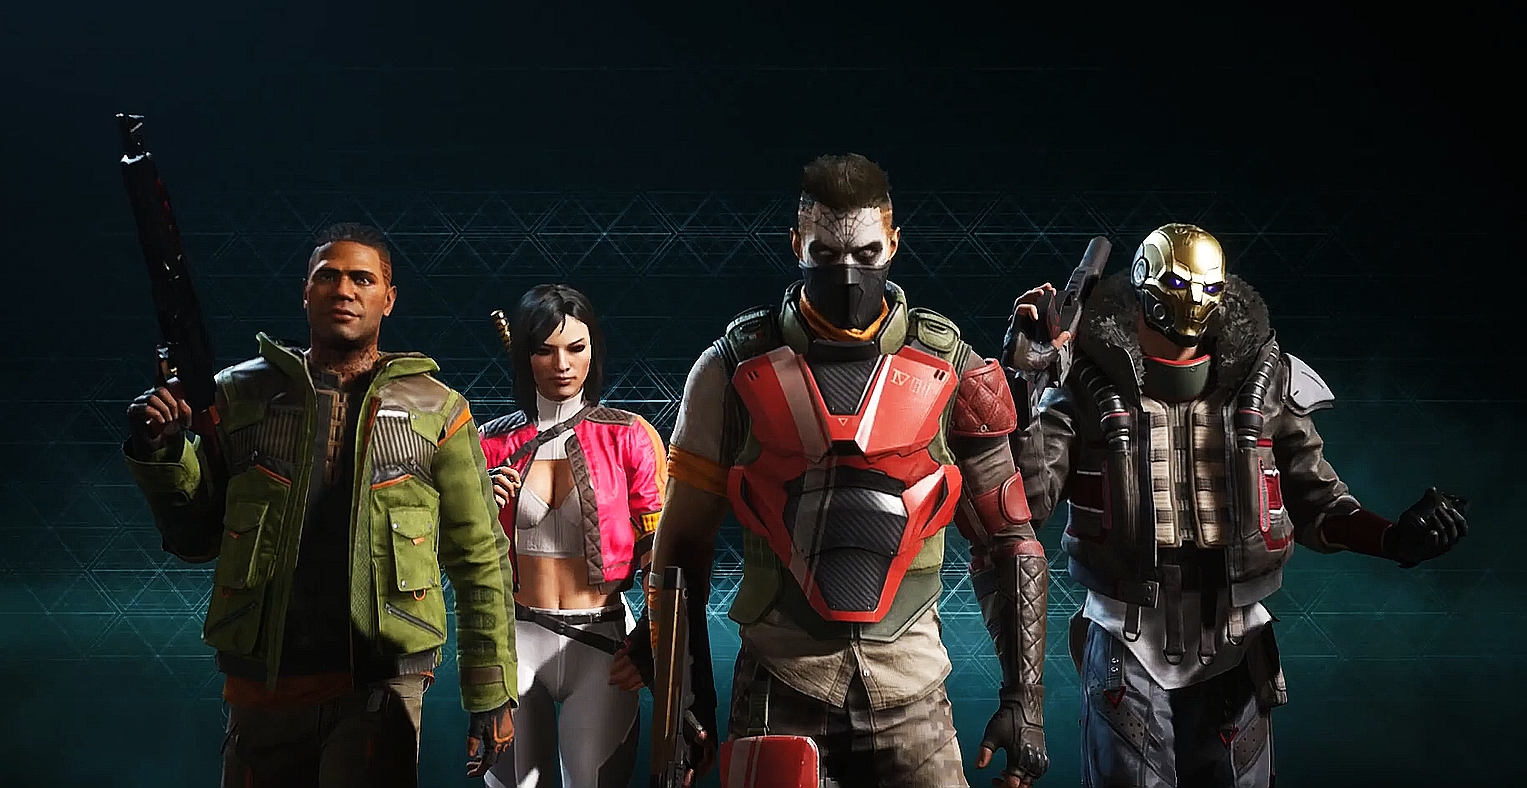 Rogue Company goes free-to-play, adding new content and gameplay trailer